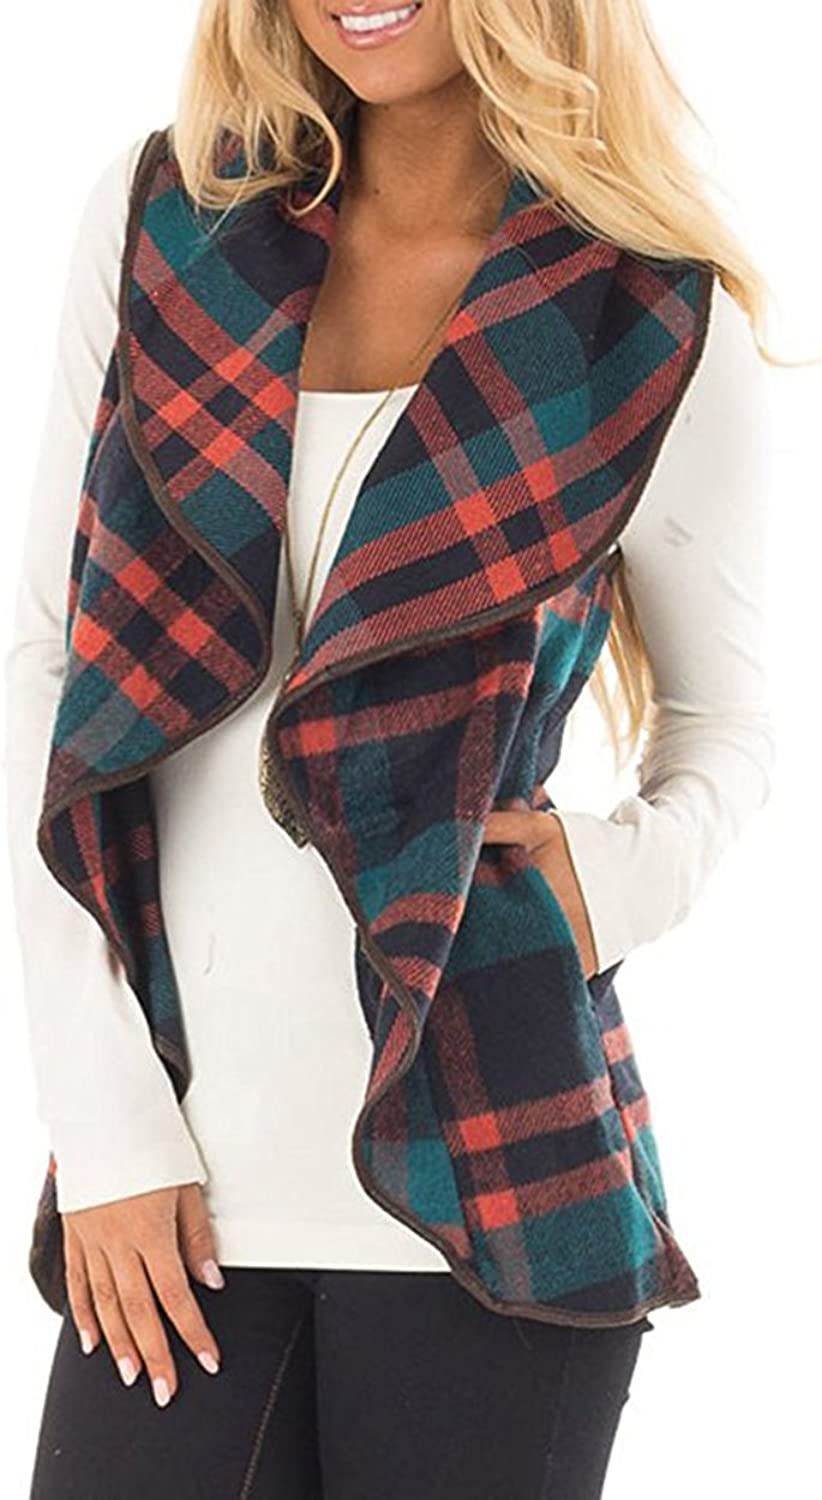 Choha Women's Lapel Open Front Sleeveless Plaid Vest Cardigan Sweater Coat